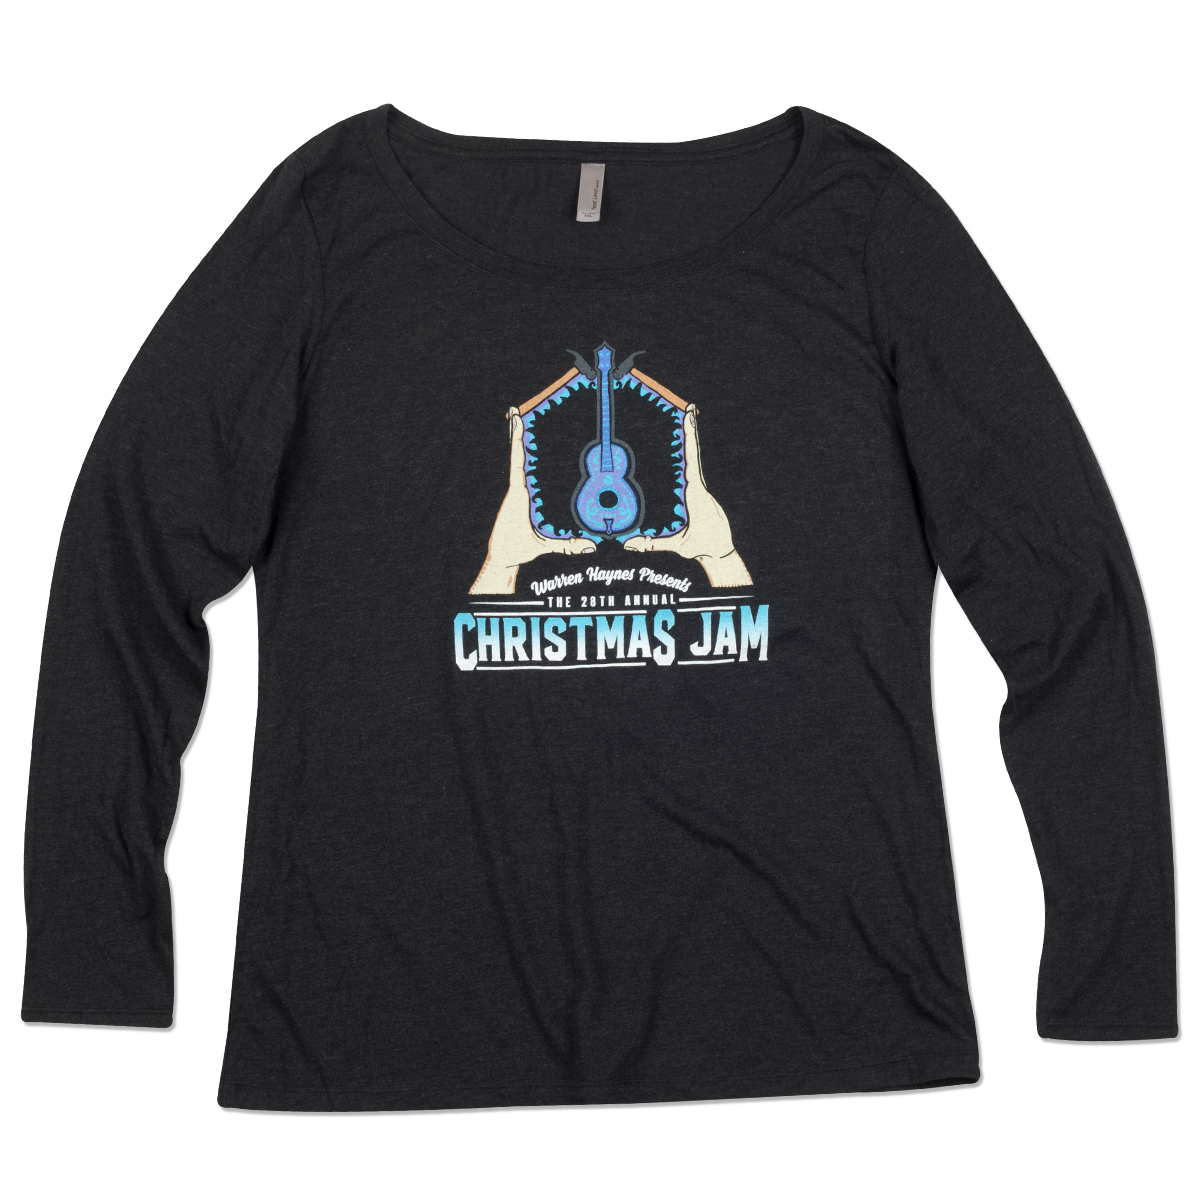 Warren Haynes 2016 Christmas Jam Women's Long Sleeve T-Shirt